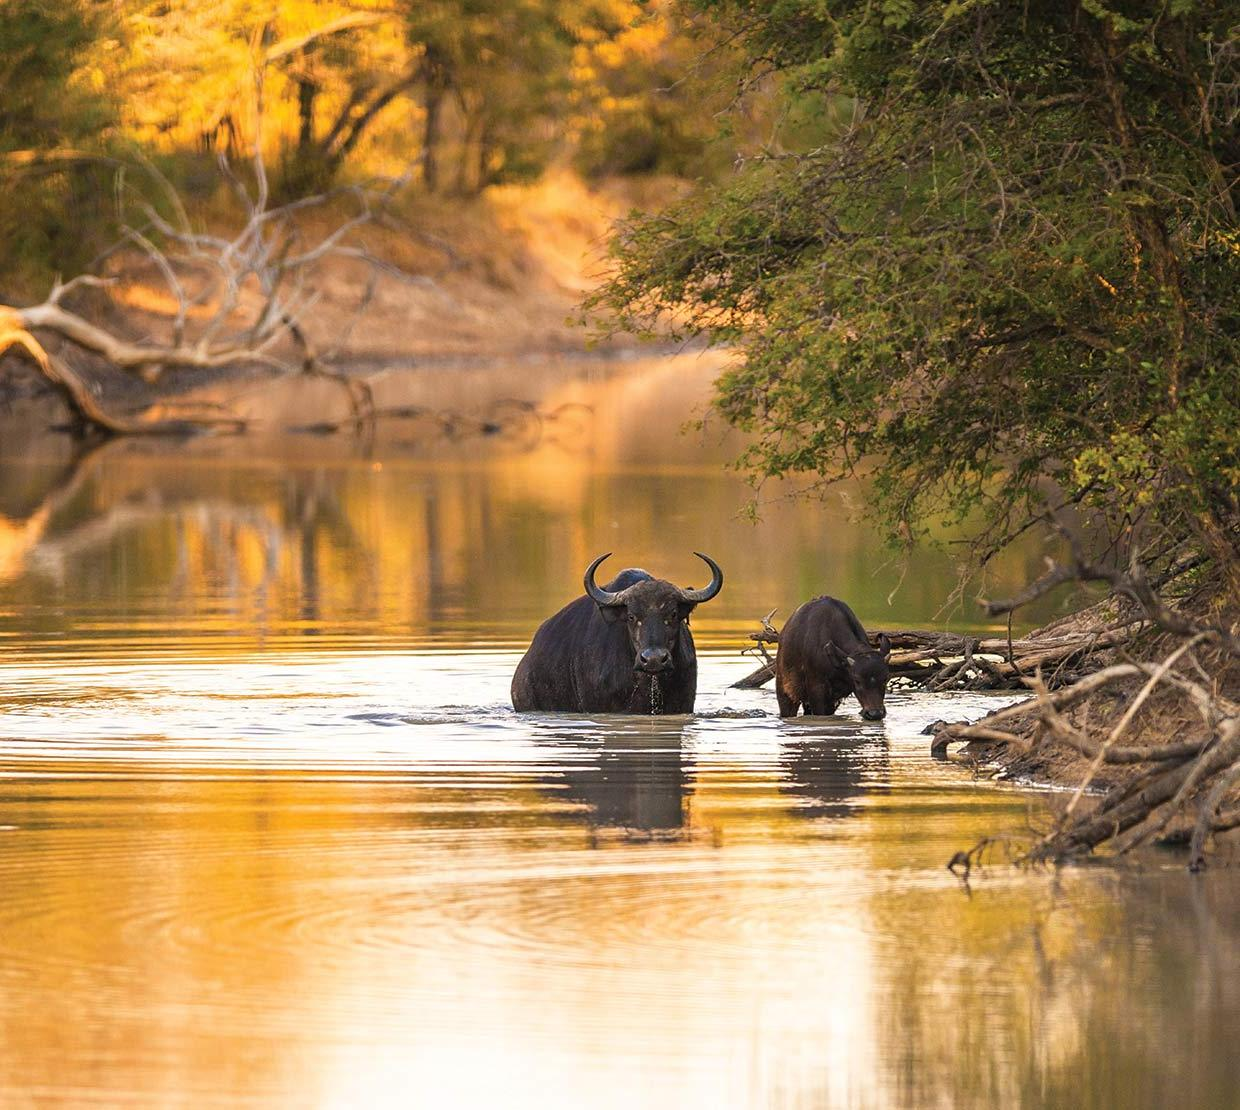 water buffalo drinking from a river